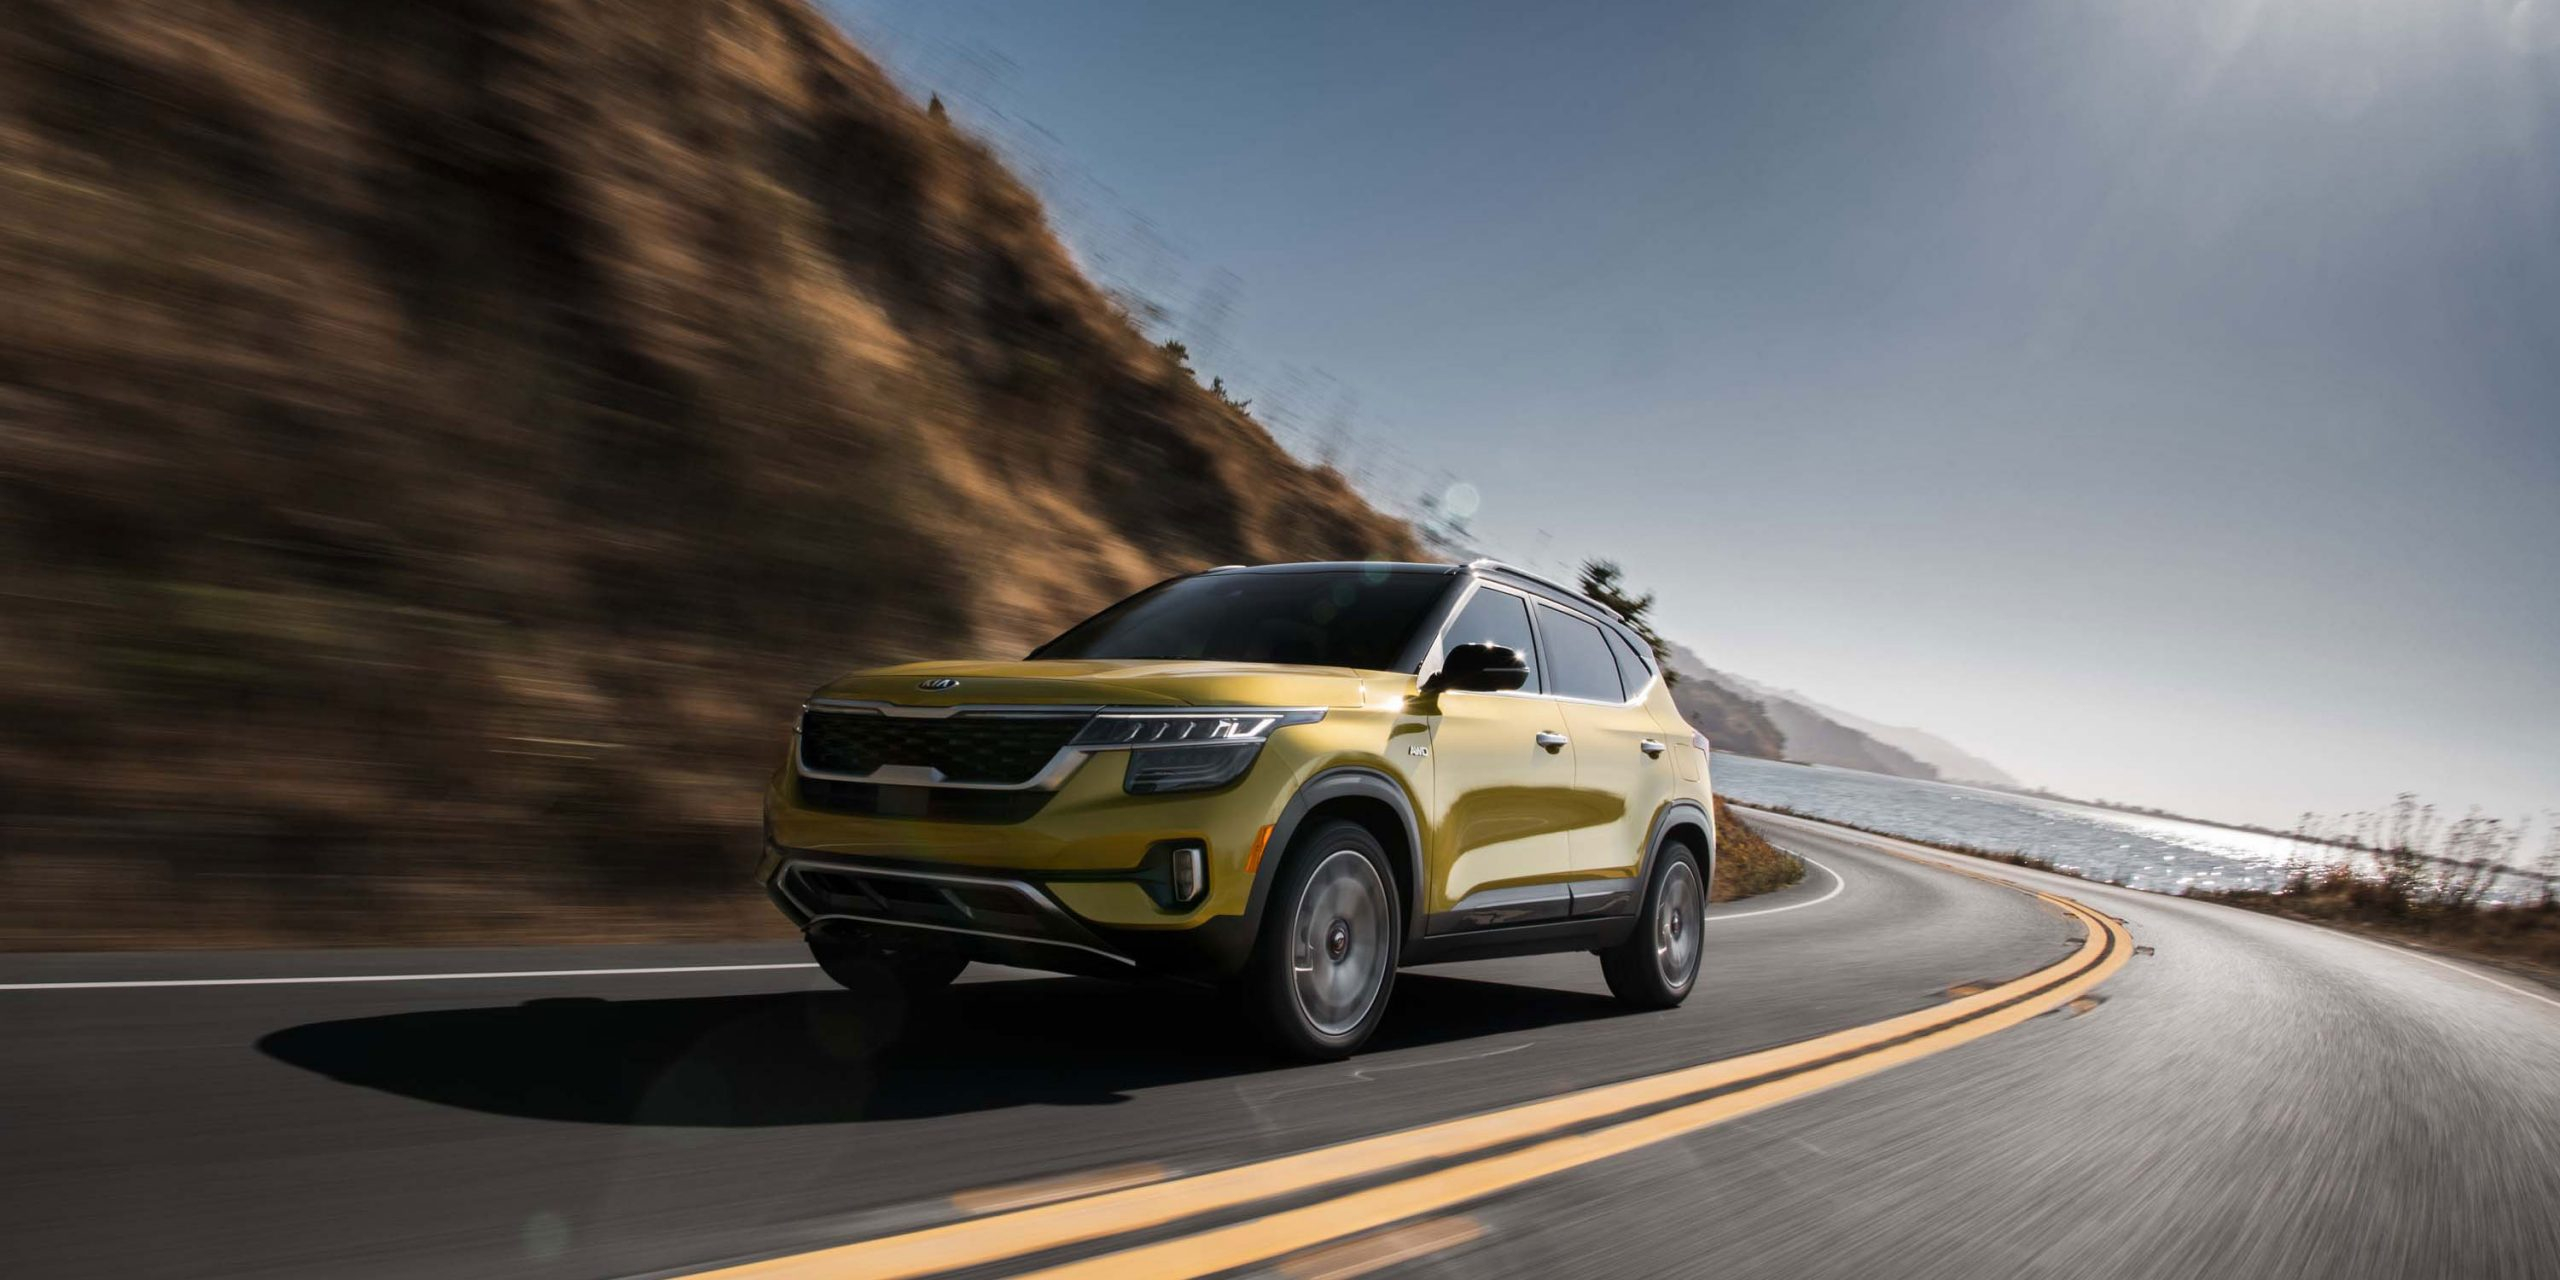 All-New 2021 Kia Seltos Blends Ruggedness And Refinement In with regard to 2021 Kia Sportage Specs, Configurations, Exterior Concept